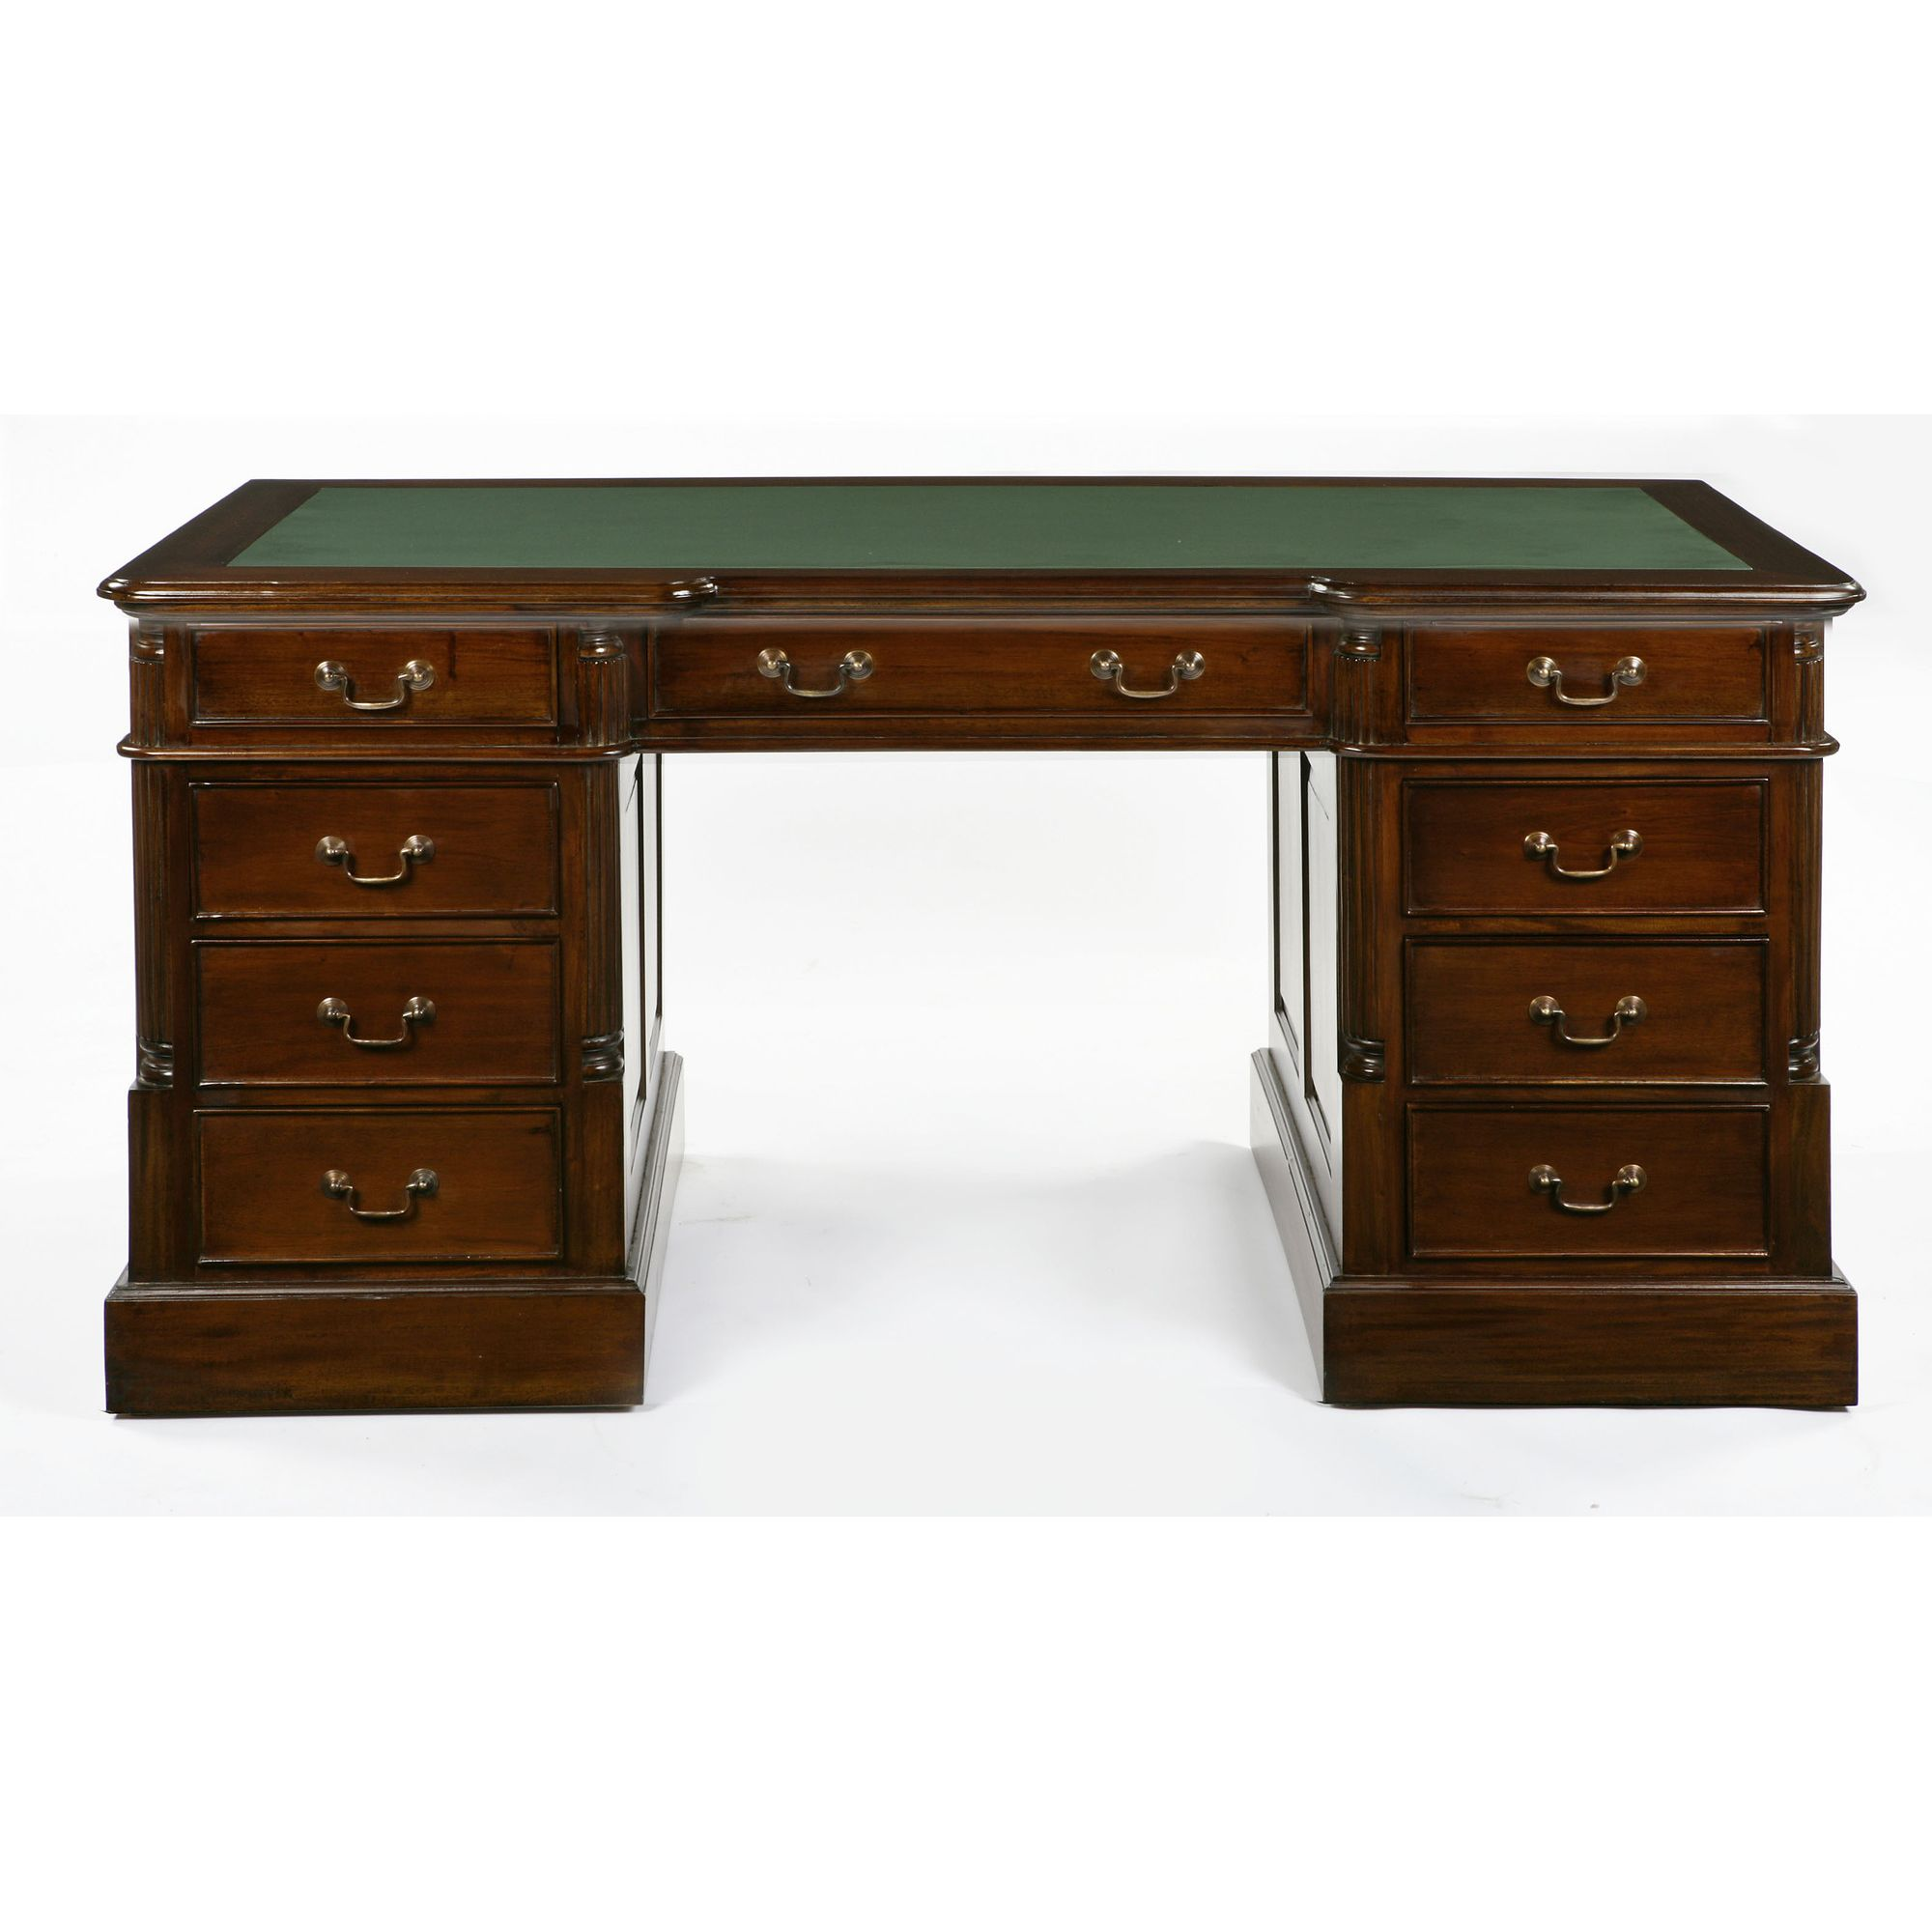 Anderson Bradshaw Victorian Twin Pedestal Desk in Mahogany at Tesco Direct